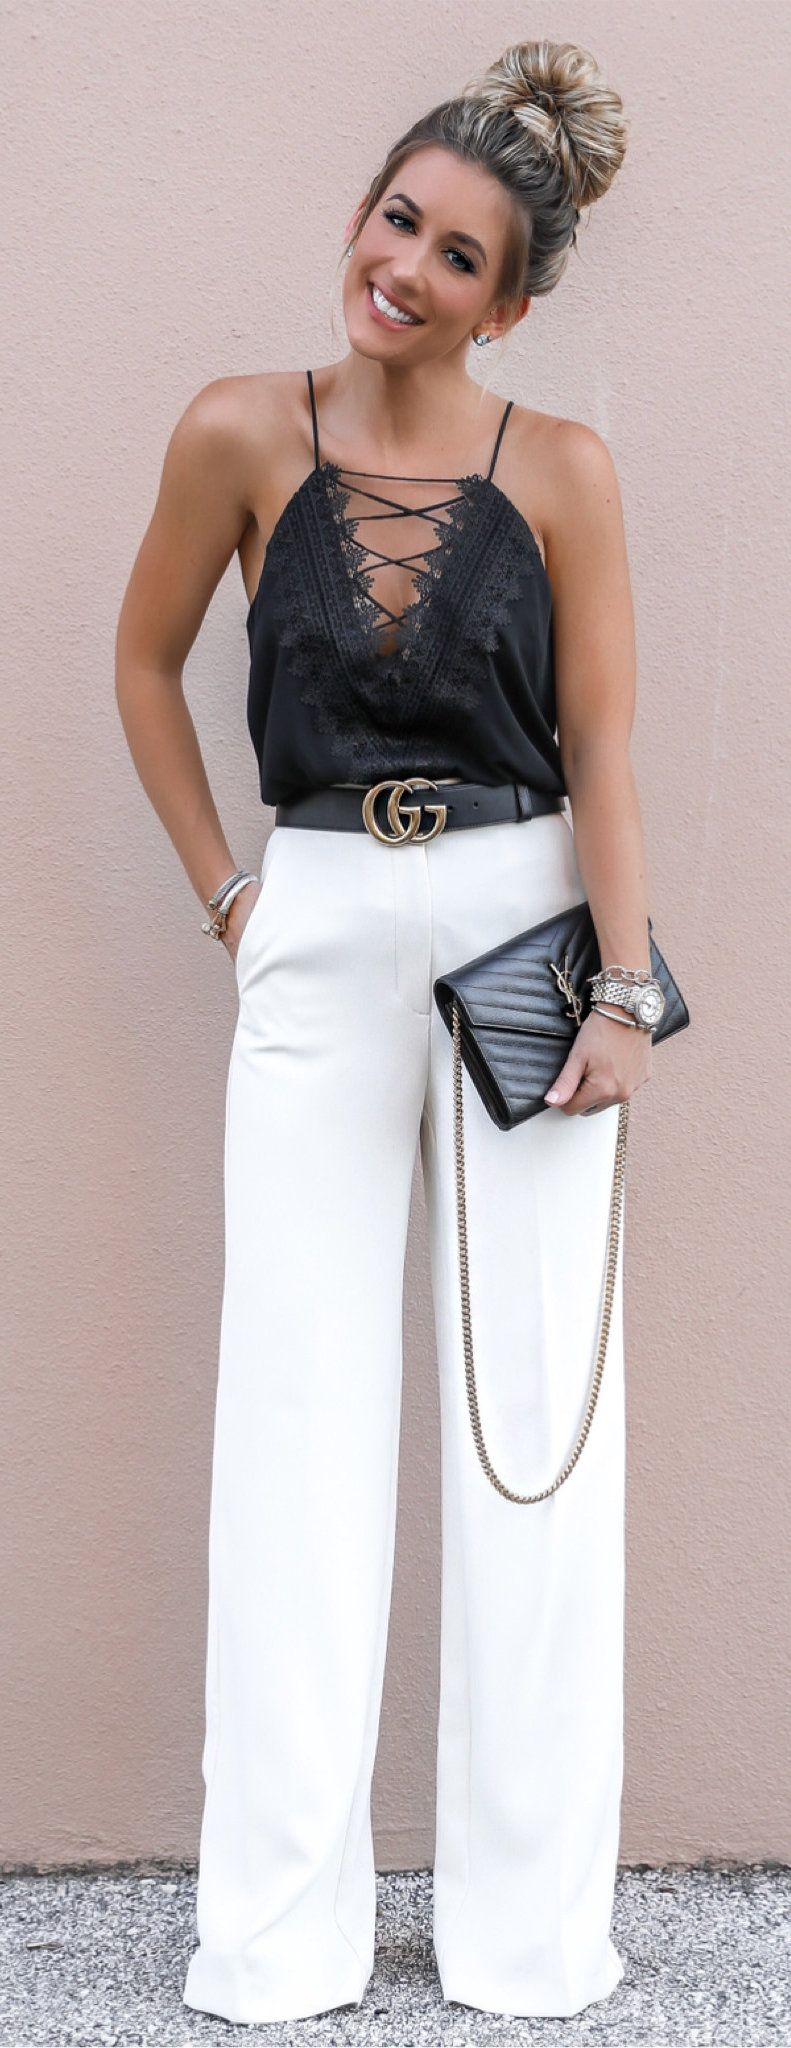 black spaghetti strap top and white dress pants